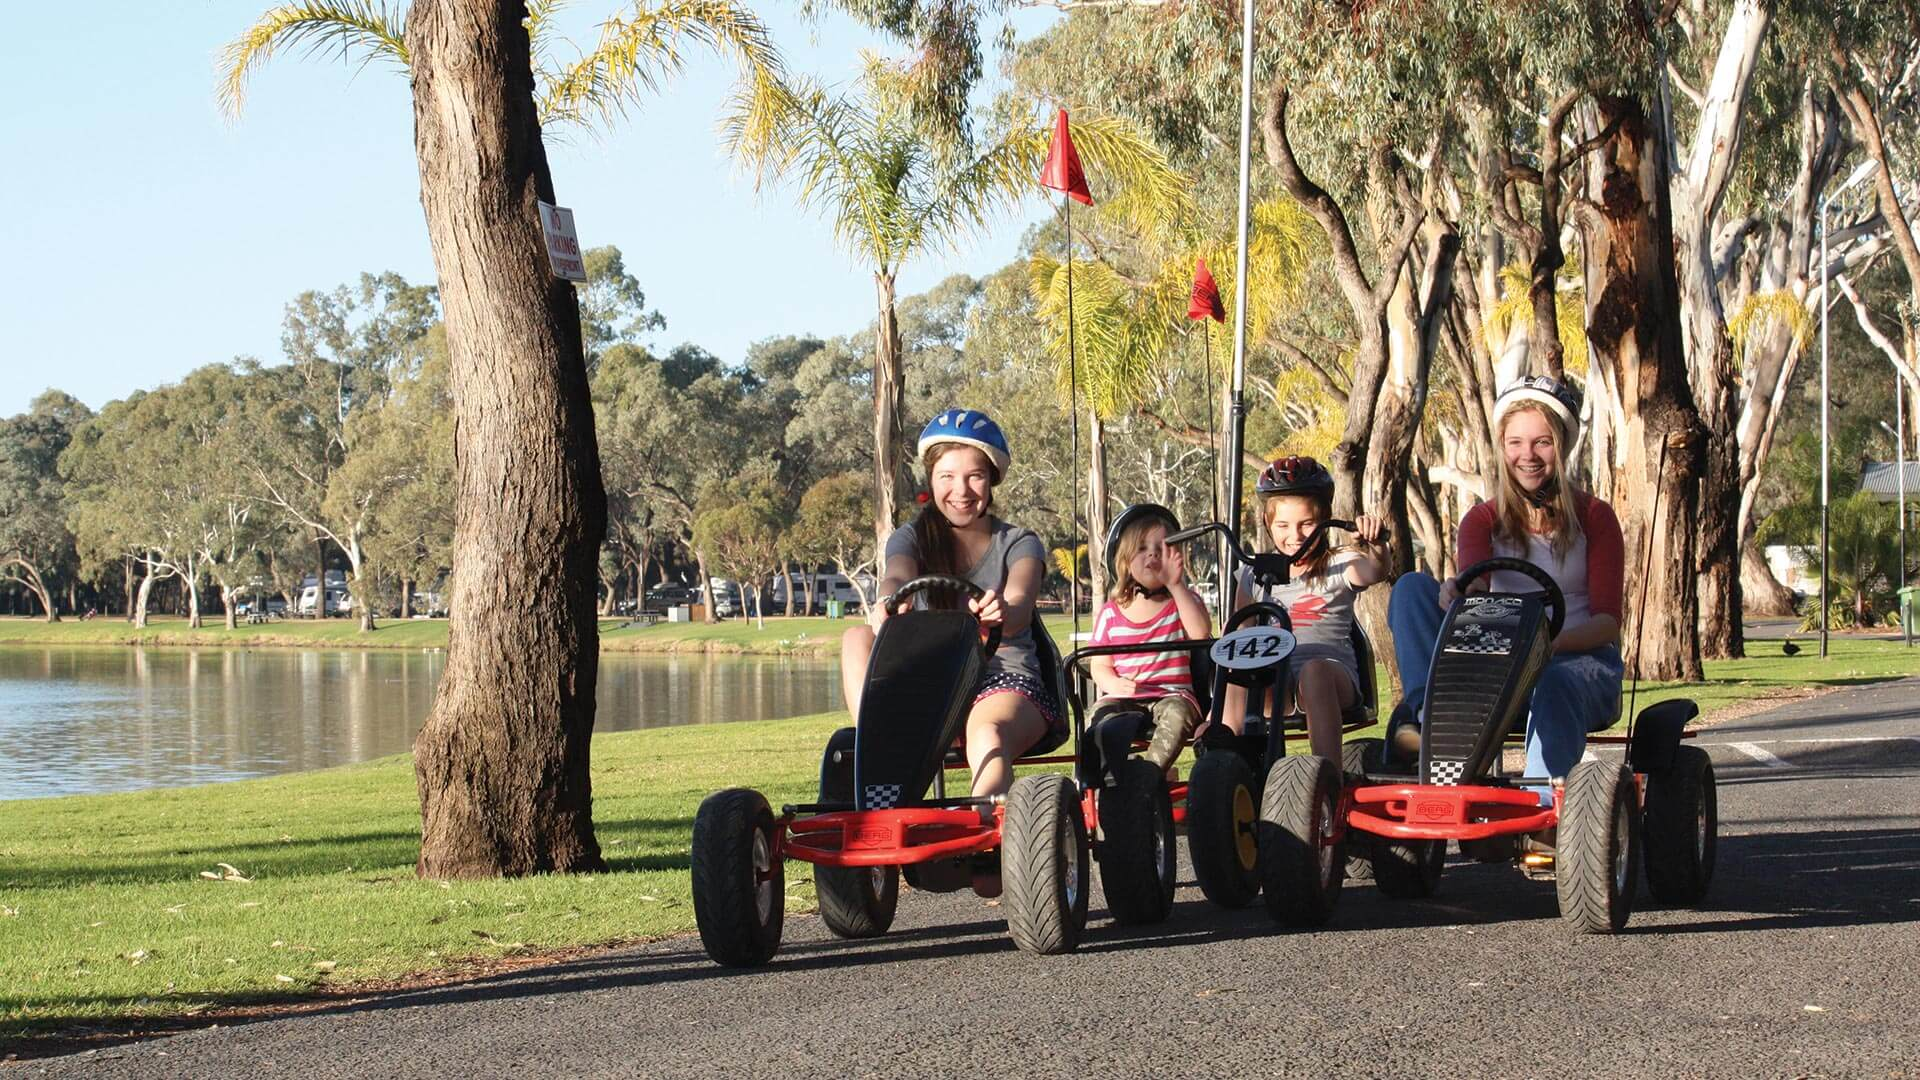 Pedal bikes at BIG4 Renmark Riverfront Holiday Park